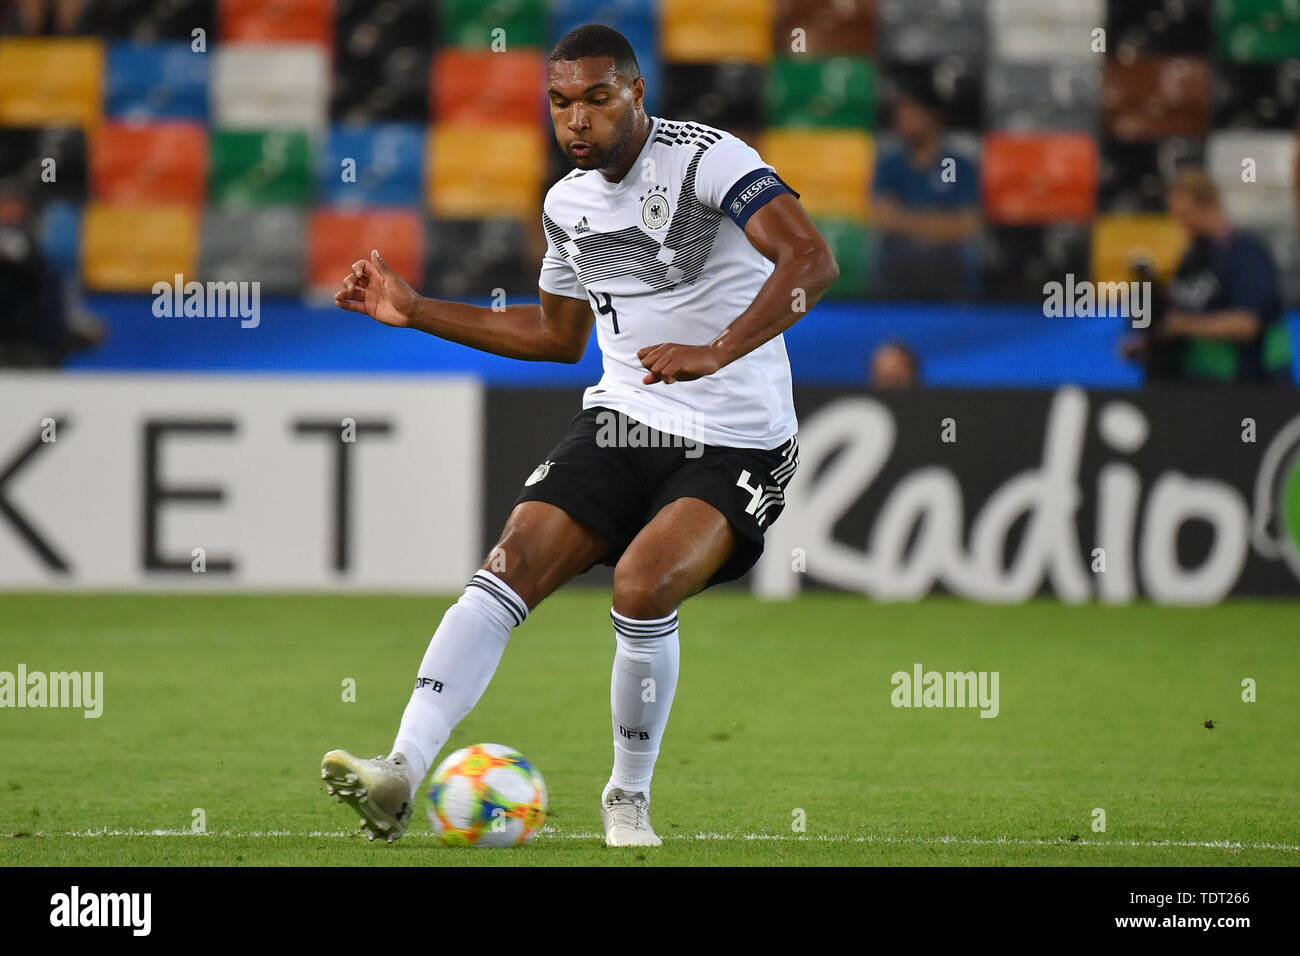 Udine, Italien. 17th June, 2019. Jonathan TAH (GER), Action, Single Action, Frame, Cut Out, Full Body, Whole Figure. Germany (GER) -Daenemark (DEN) 3-1, on 17.06.2019 Stadio Friuli Udine. Football U-21, UEFA Under21 European Championship in Italy/SanMarino from 16.-30.06.2019. | Usage worldwide Credit: dpa/Alamy Live News - Stock Image